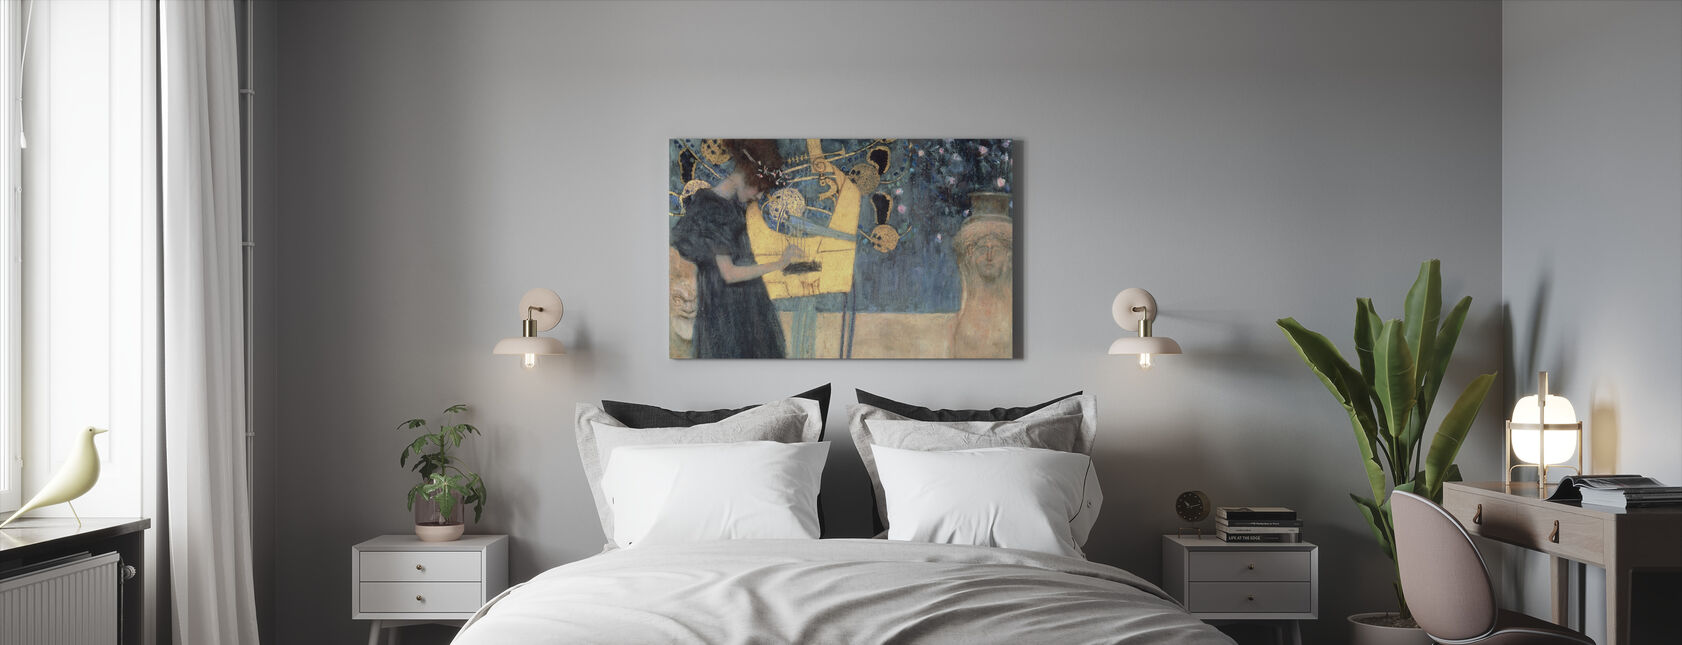 Klimt, Gustav - Music - Canvas print - Bedroom